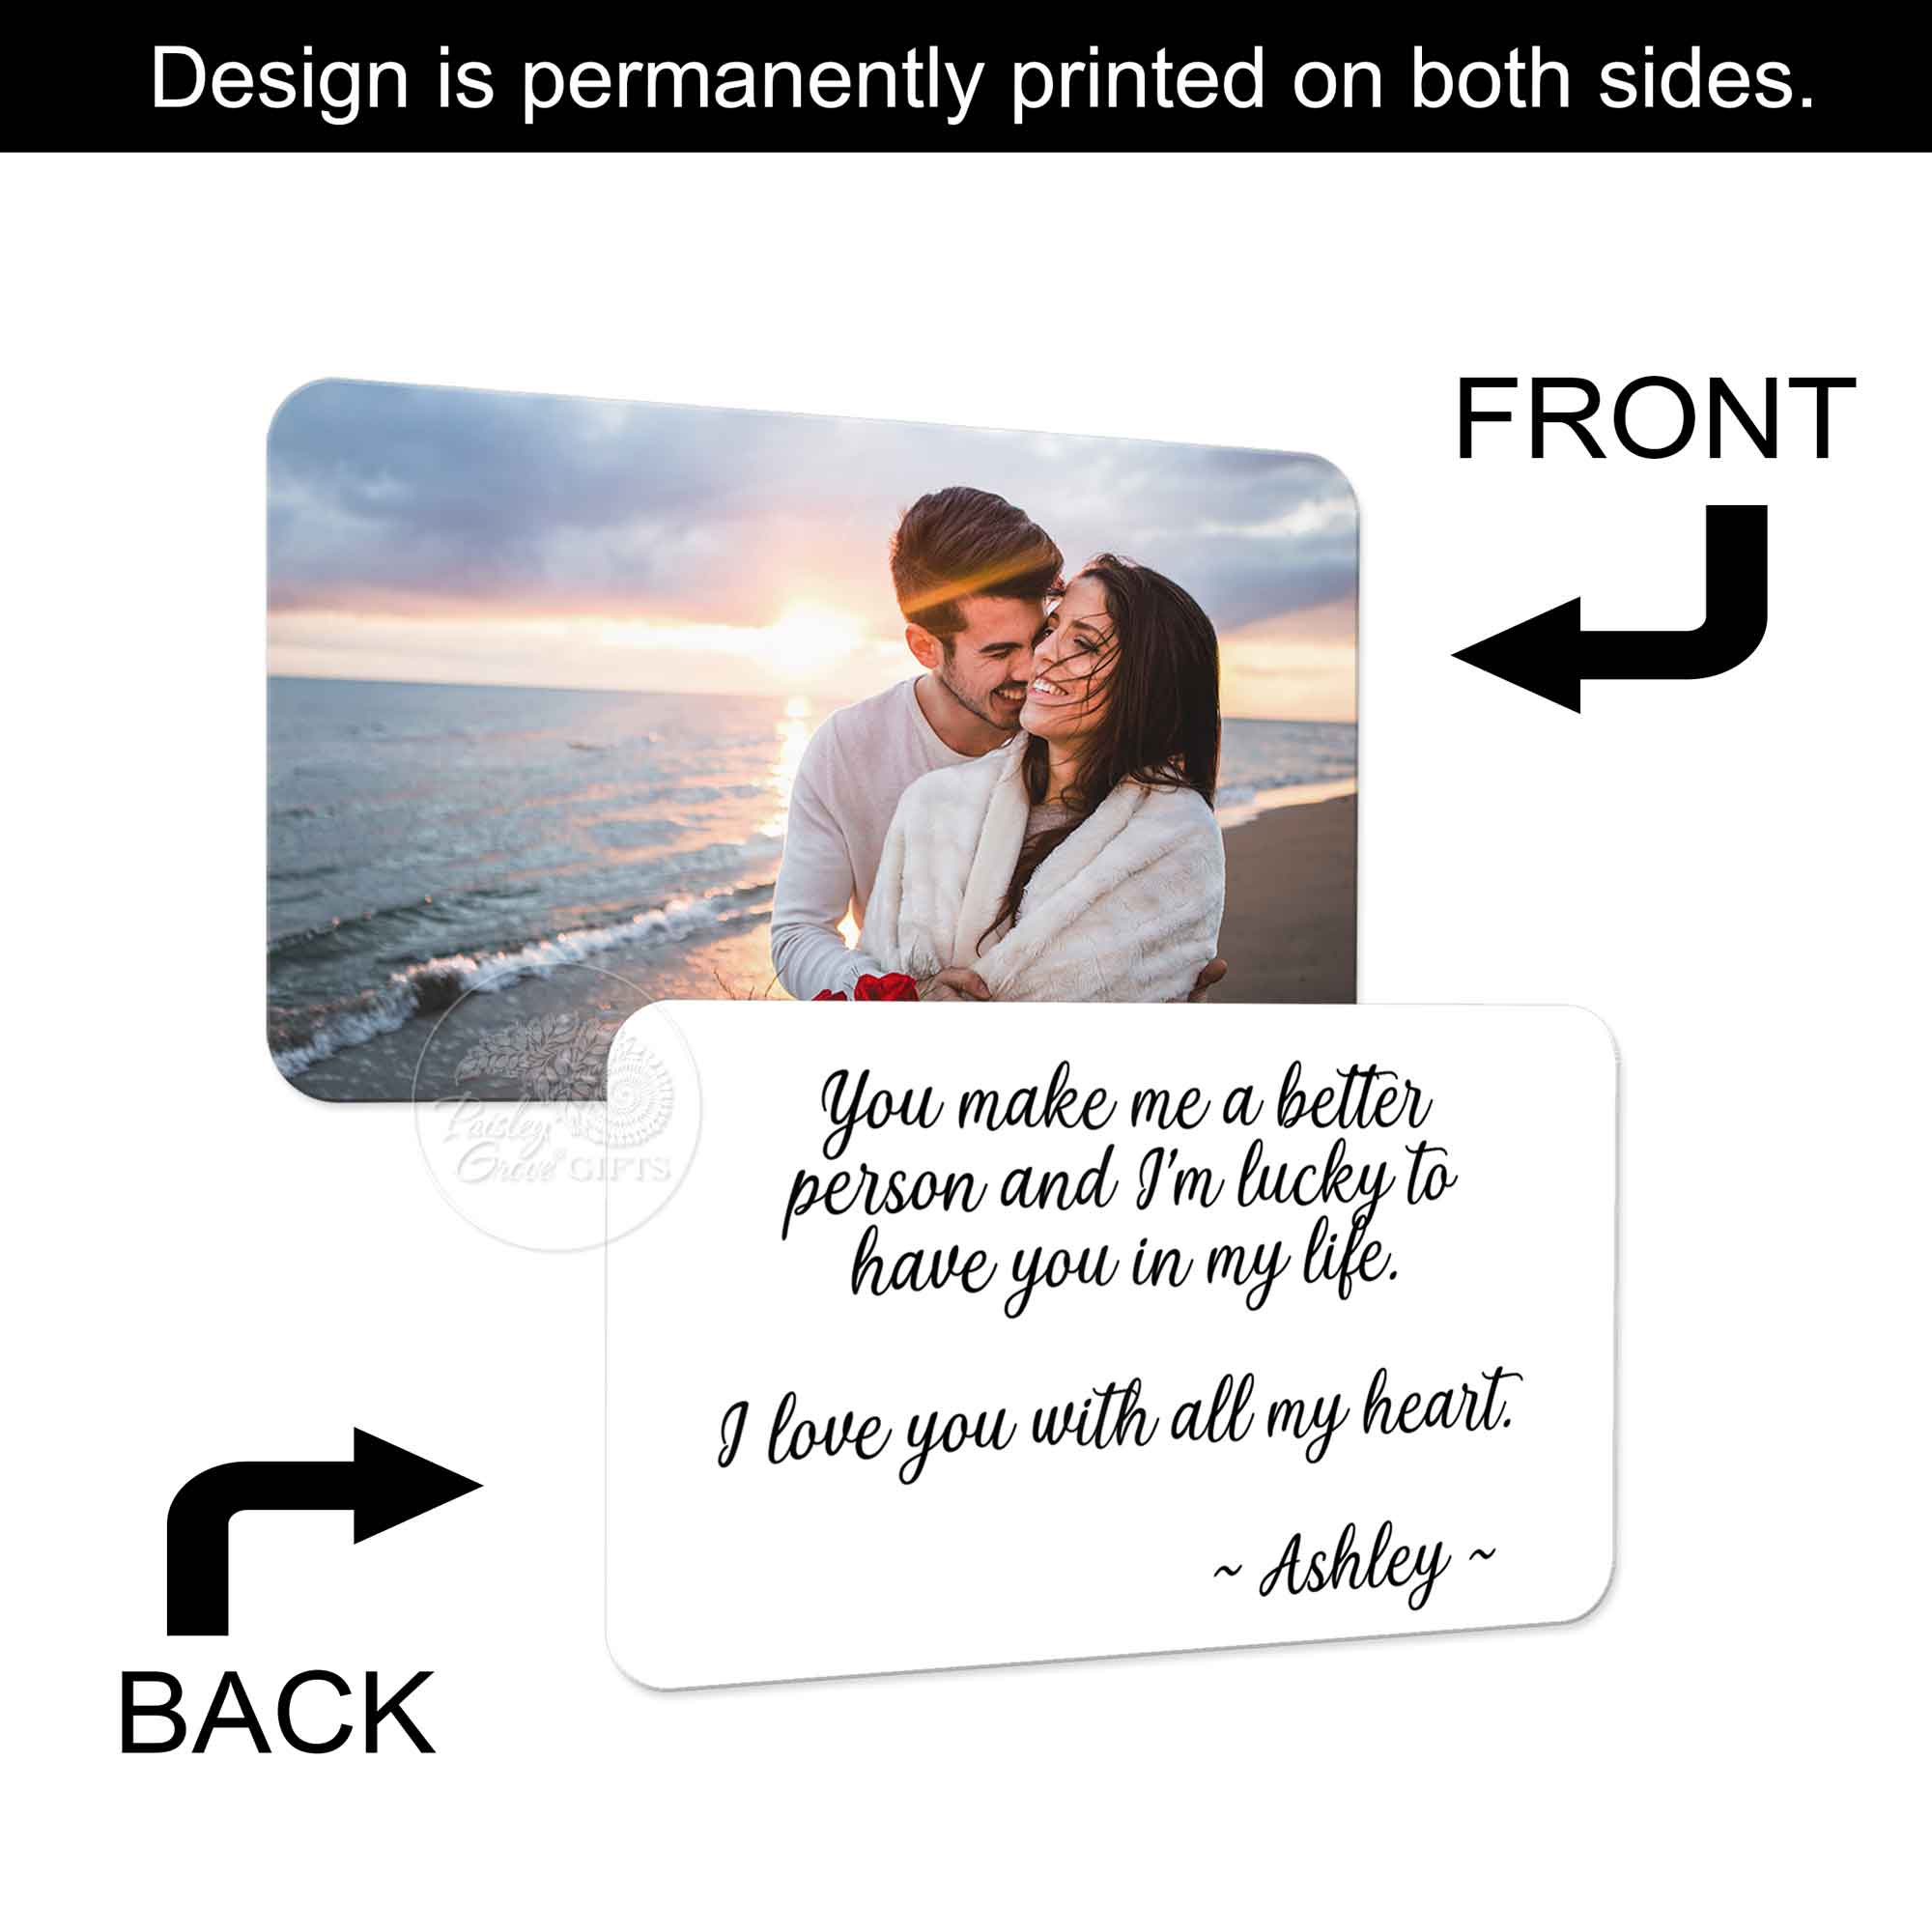 Copyright PaisleyGroveGIFTS S600c1 Permanent print on both sides of this metal card insert with your picture and message